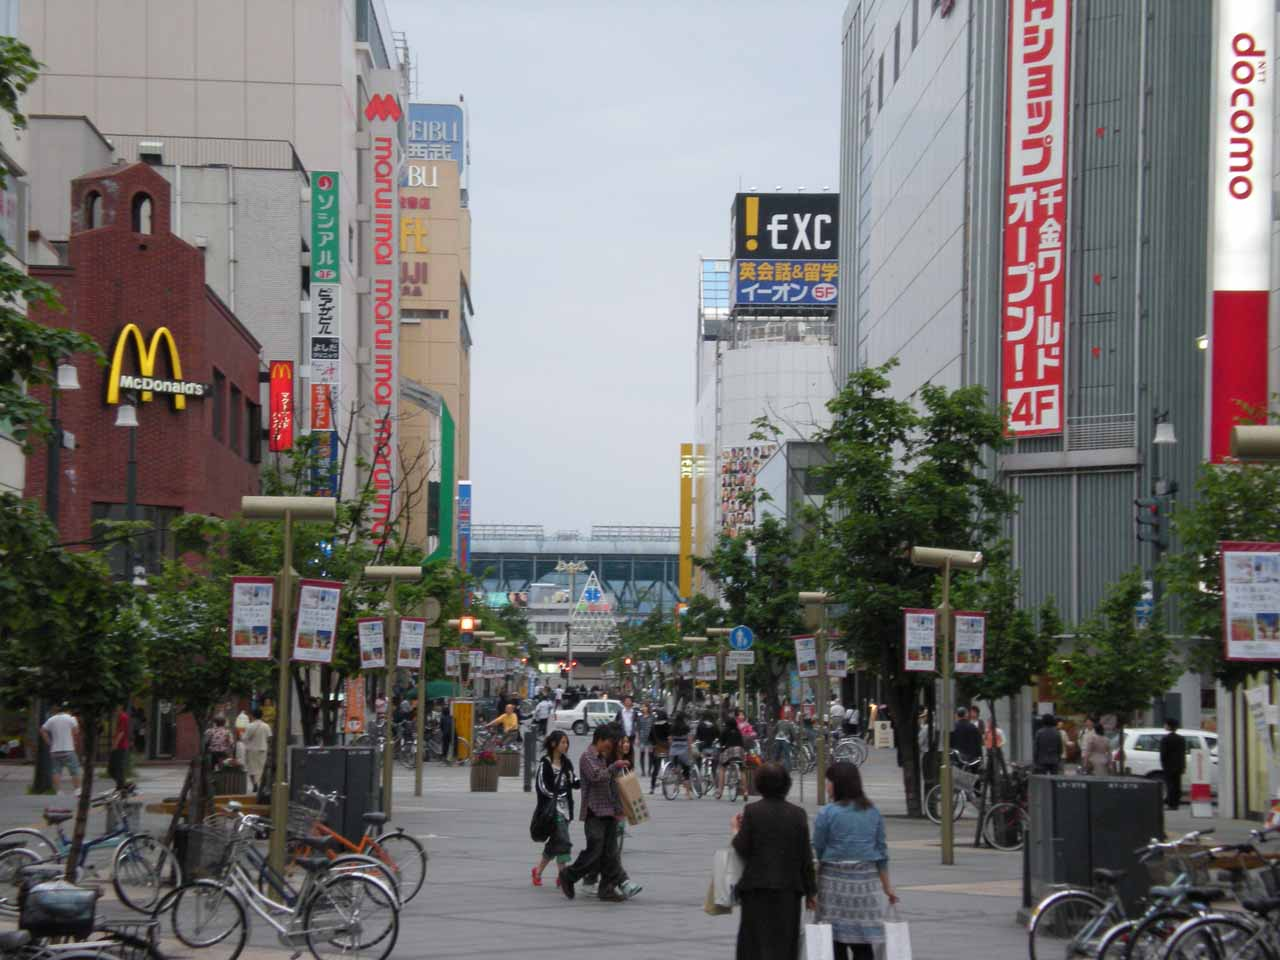 Walking the somewhat happening streets of Asahikawa